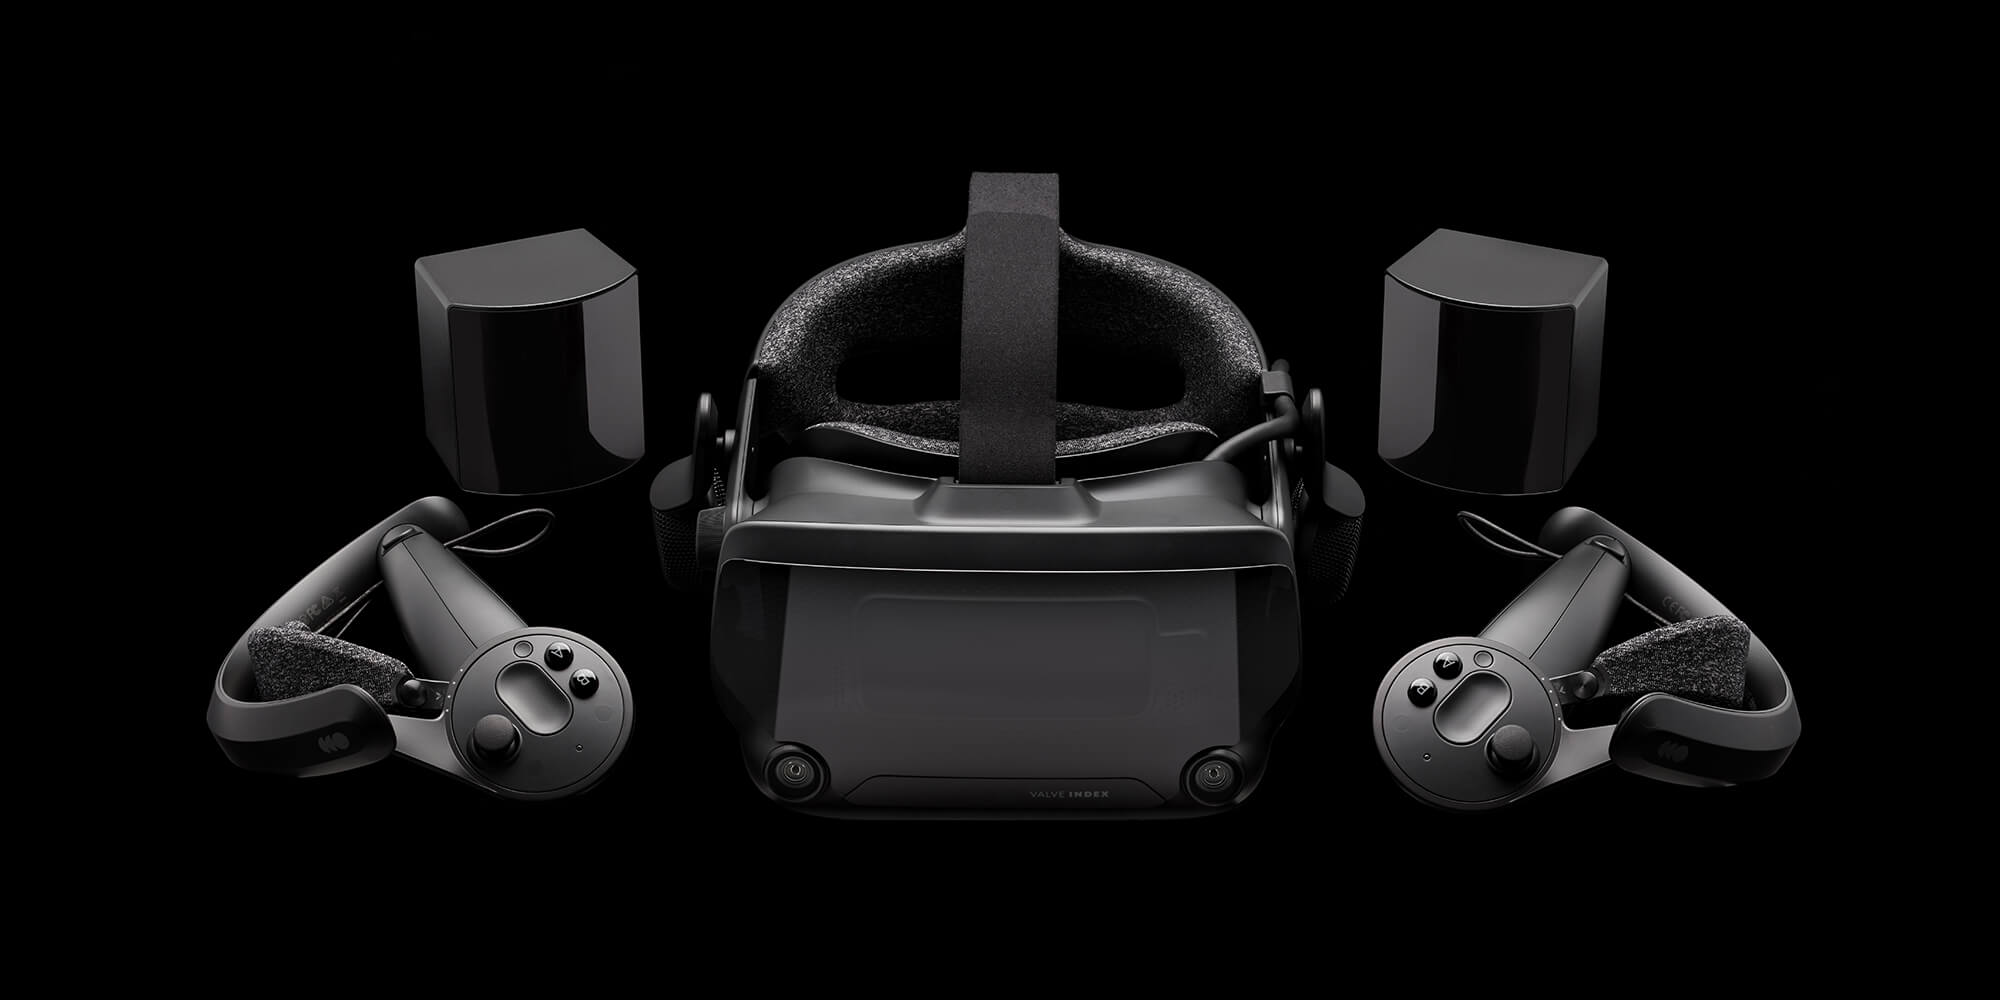 Valve Index is the fanciest, and priciest, VR headset around